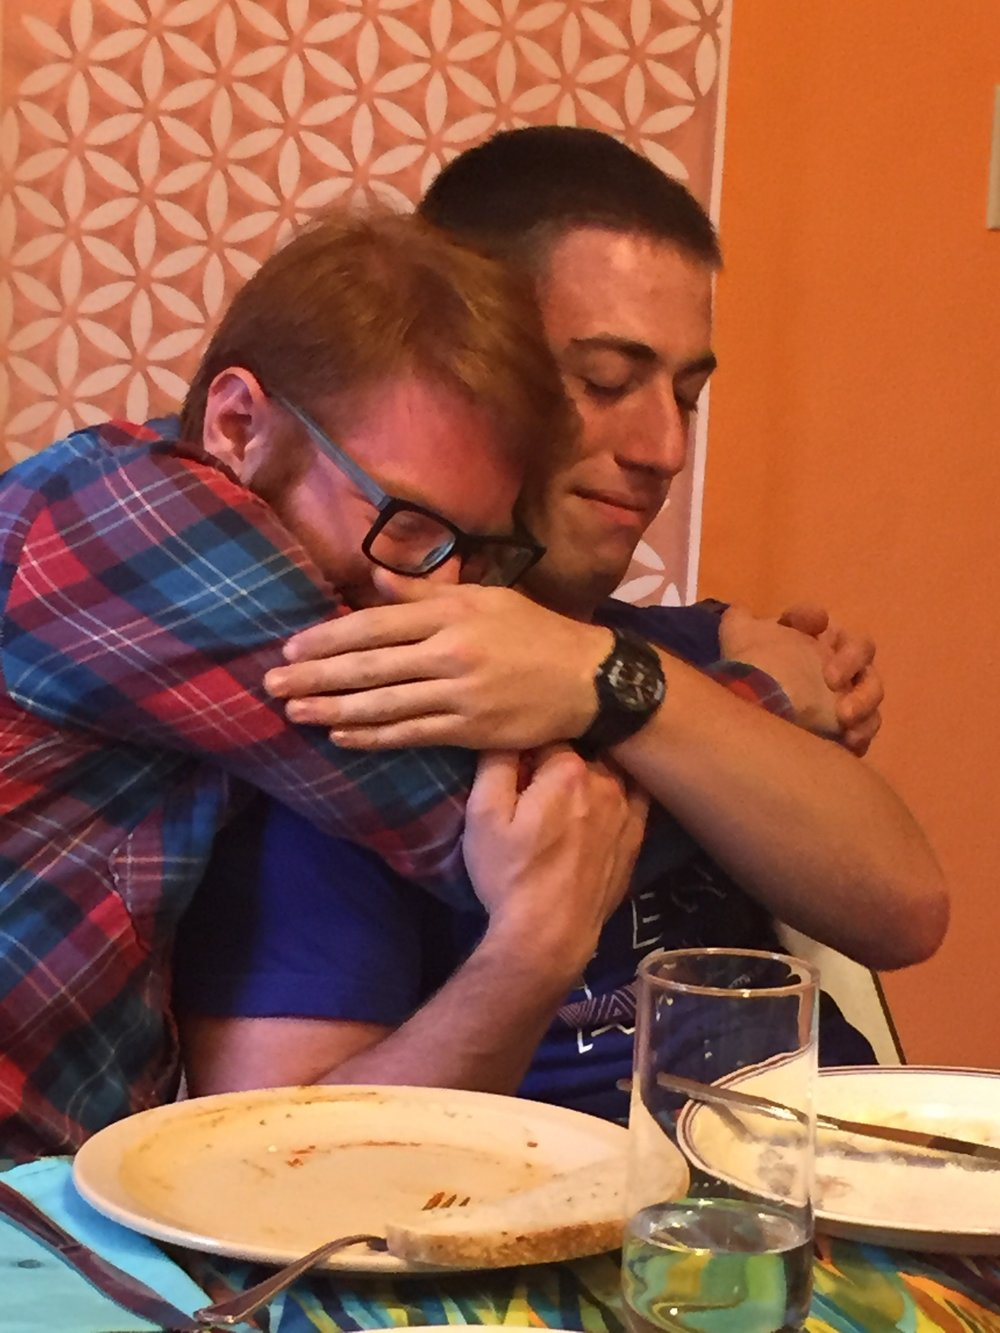 Gavin says goodbye to Ben at graduation and godspeed NOSH.